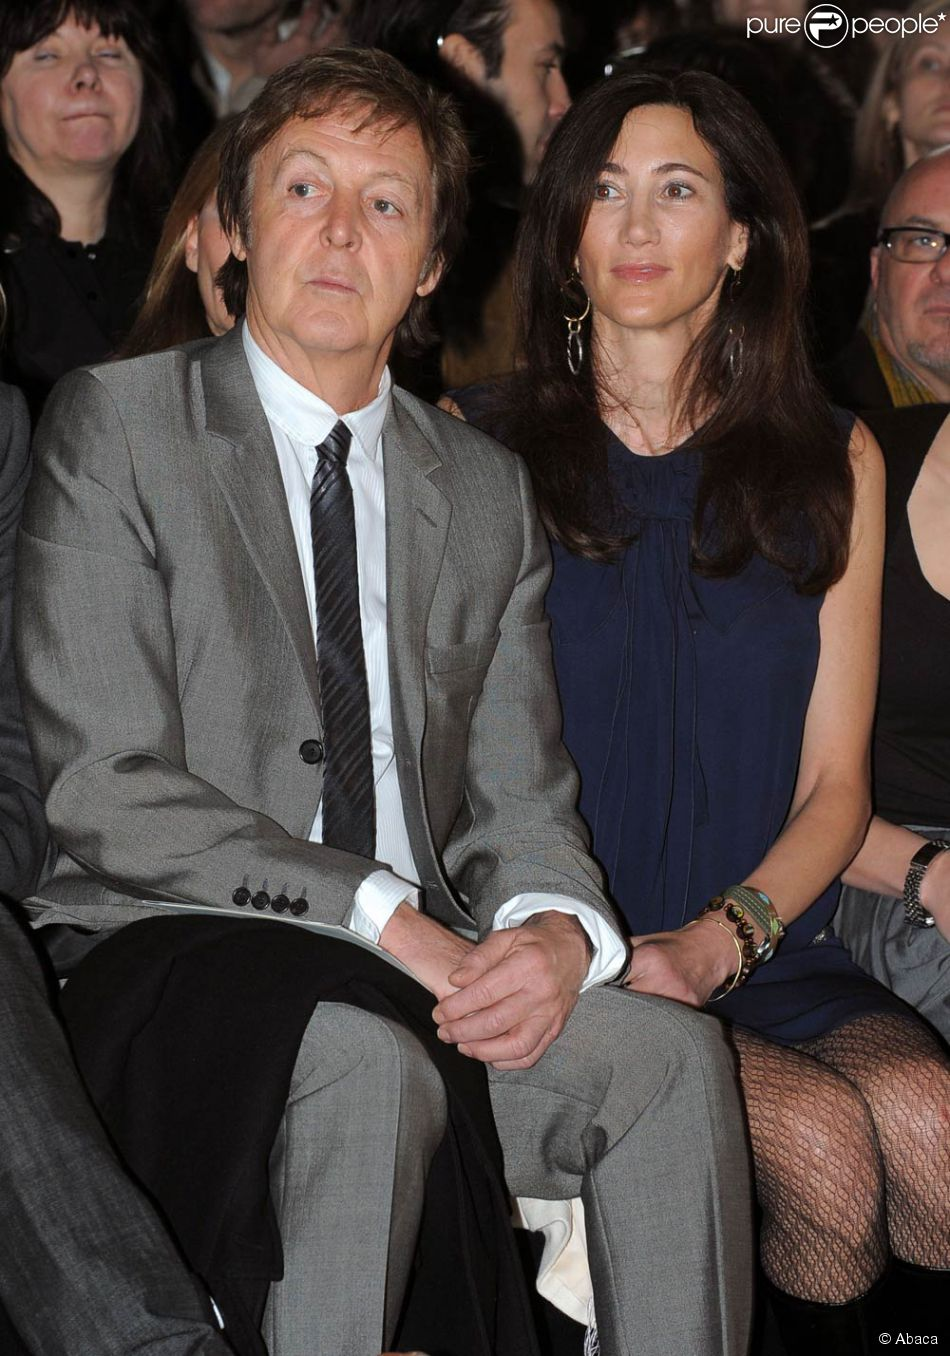 paul mccartney et sa femme assitent au d fil stella mccartney paris le 9 mars 2009 purepeople. Black Bedroom Furniture Sets. Home Design Ideas